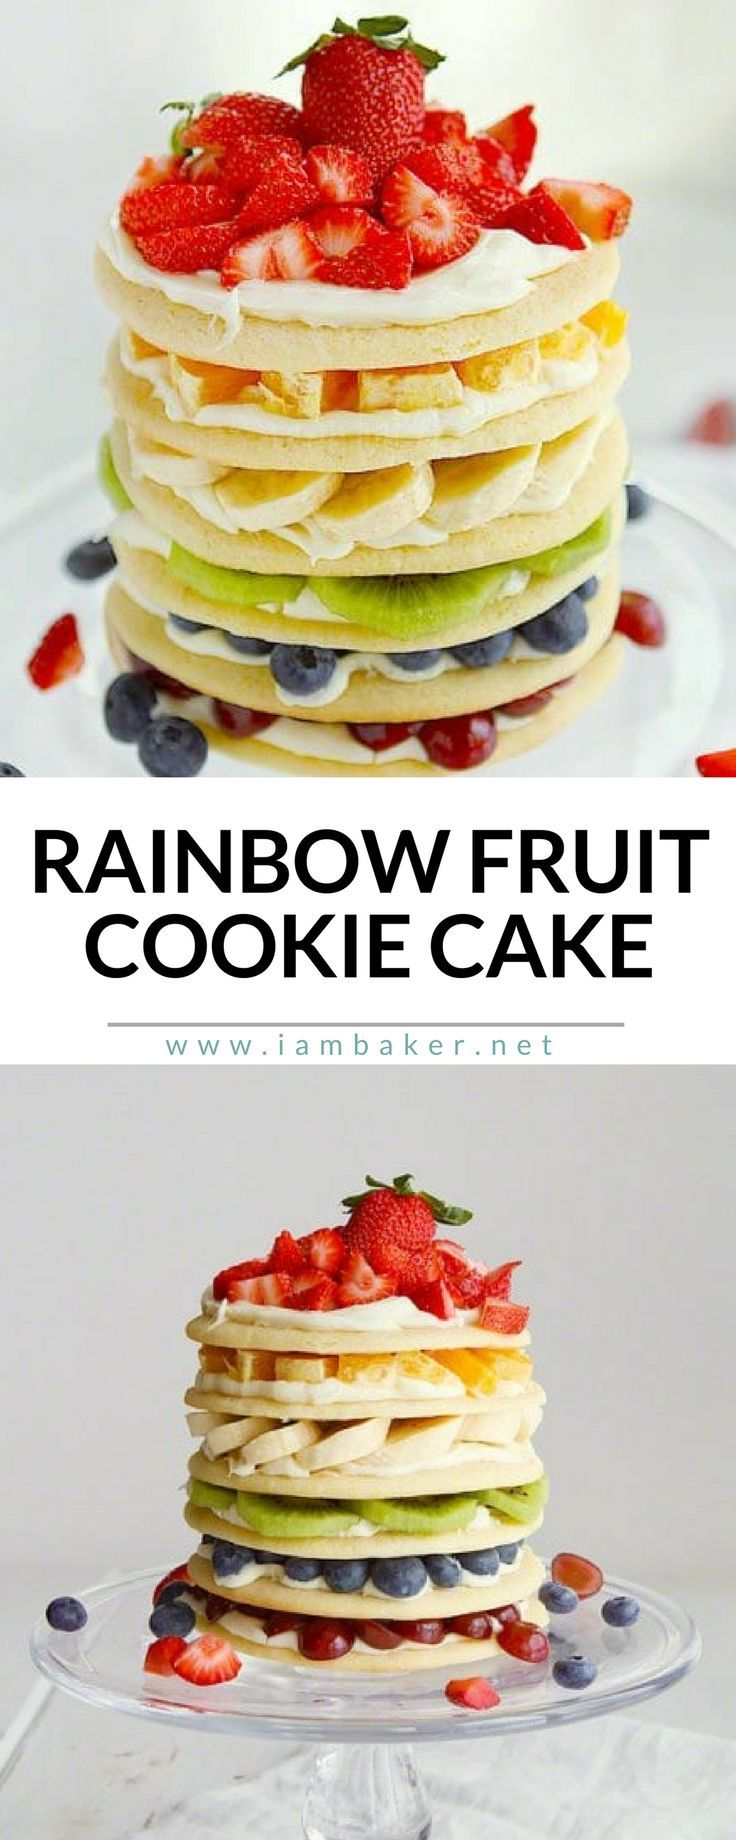 Rainbow Fruit Cookie Cake- St. Patricks Day is approaching, and it seems like the trends are green, gold, beer, and rainbows. I thought a Rainbow would be the perfect way to incorporate a St. Patricks Day celebration in our home.